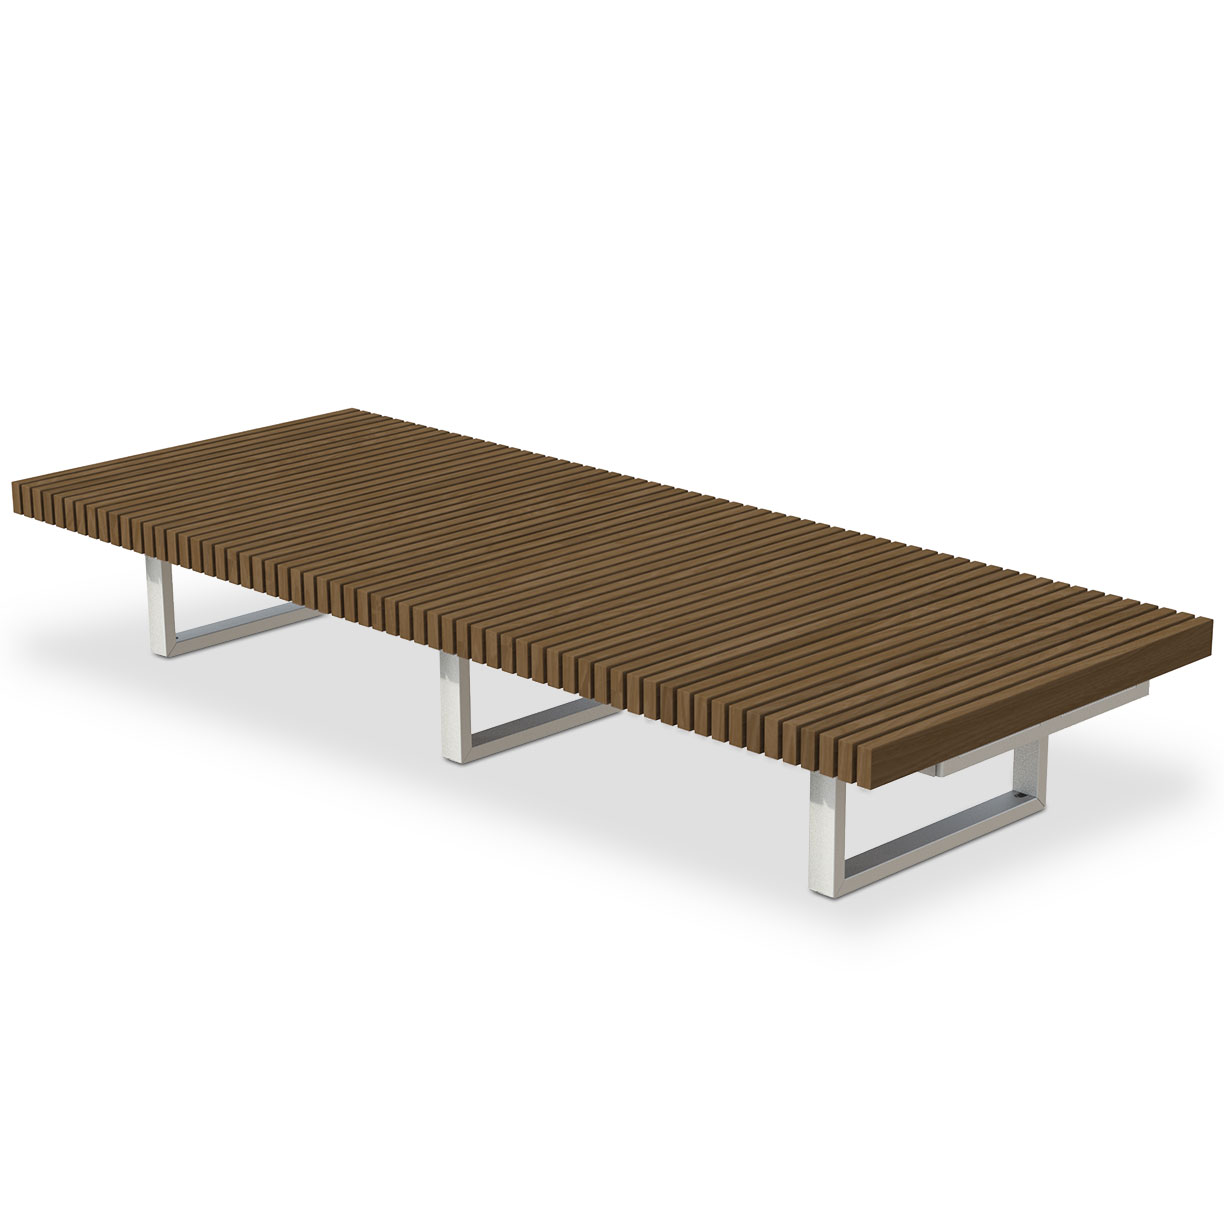 INF48L10T  Infinity Collection 4' x 10' Linear Thermory Slat Bench